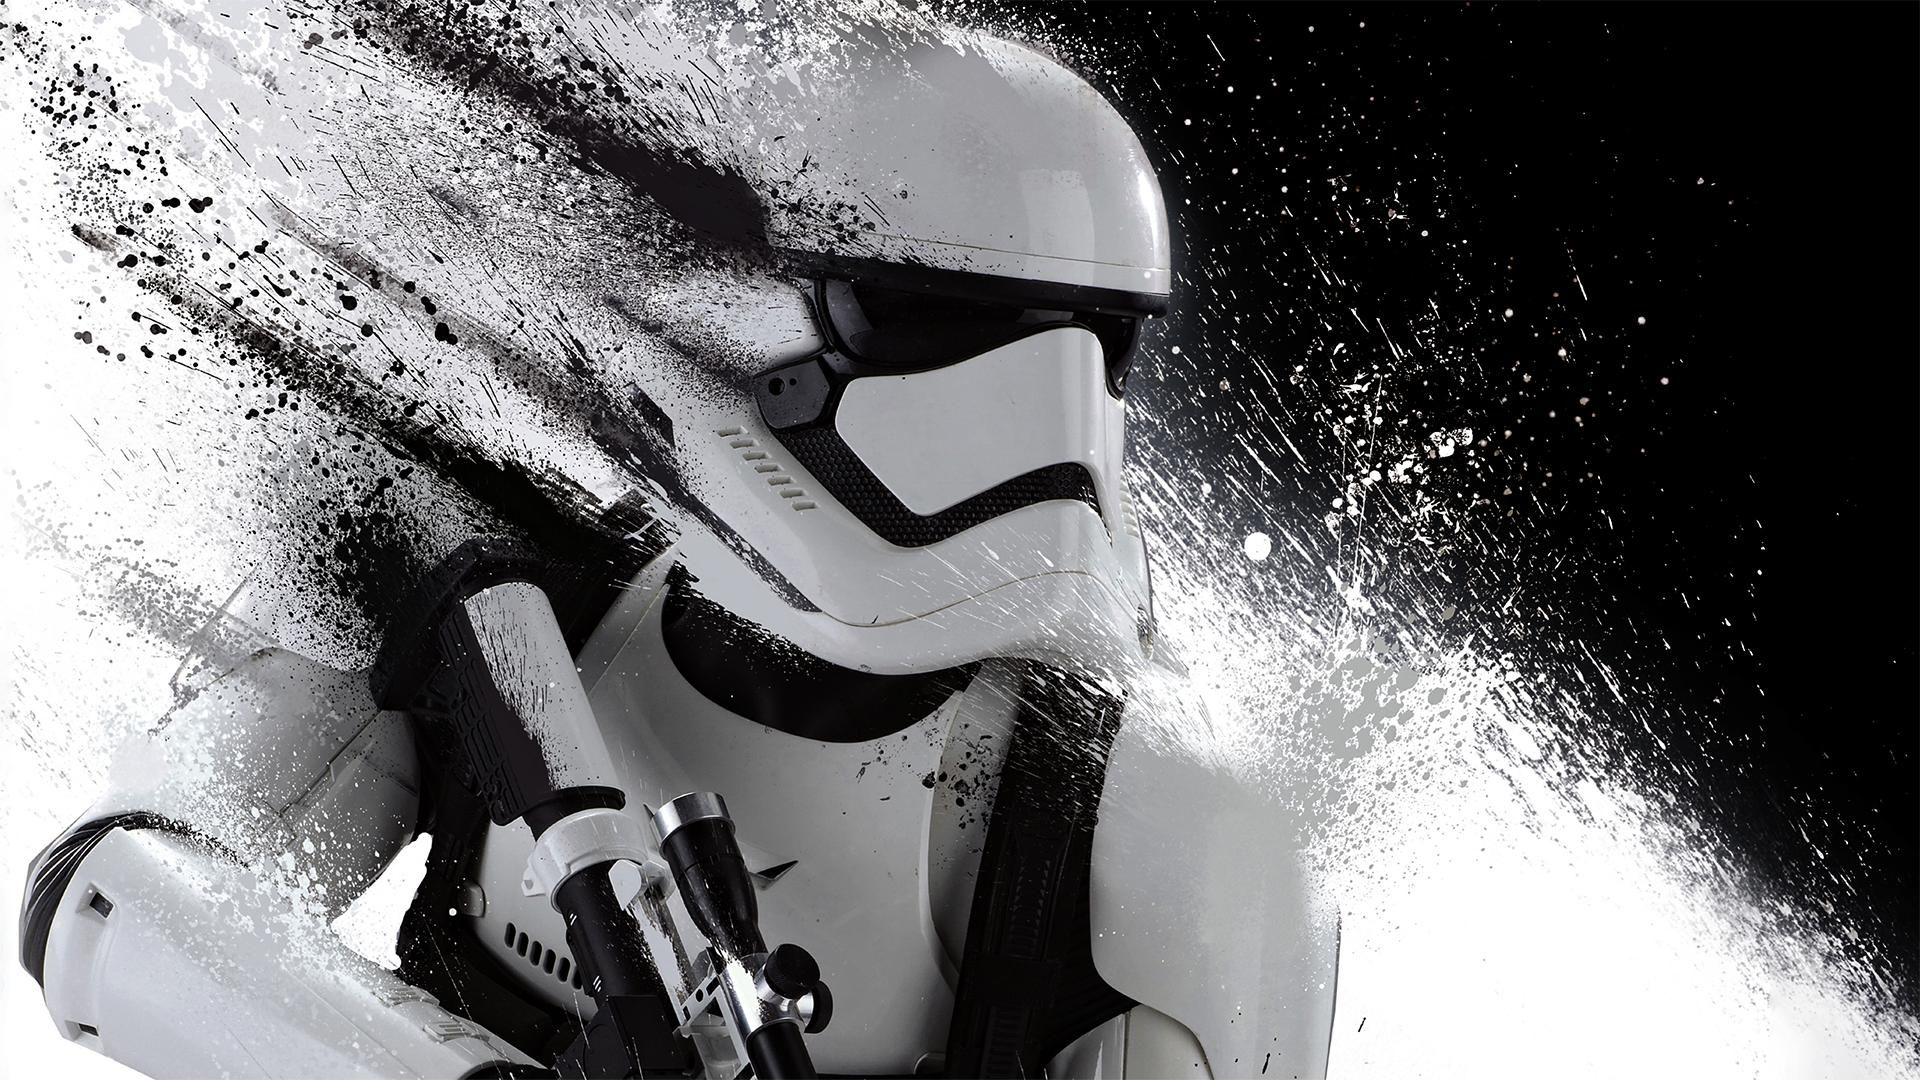 Scaled Down A Stormtrooper Wallpaper To 16 9 In 4 Resolutions R Wallpapers Star Wars Wallpaper Star Wars Stormtrooper Background Hd Wallpaper